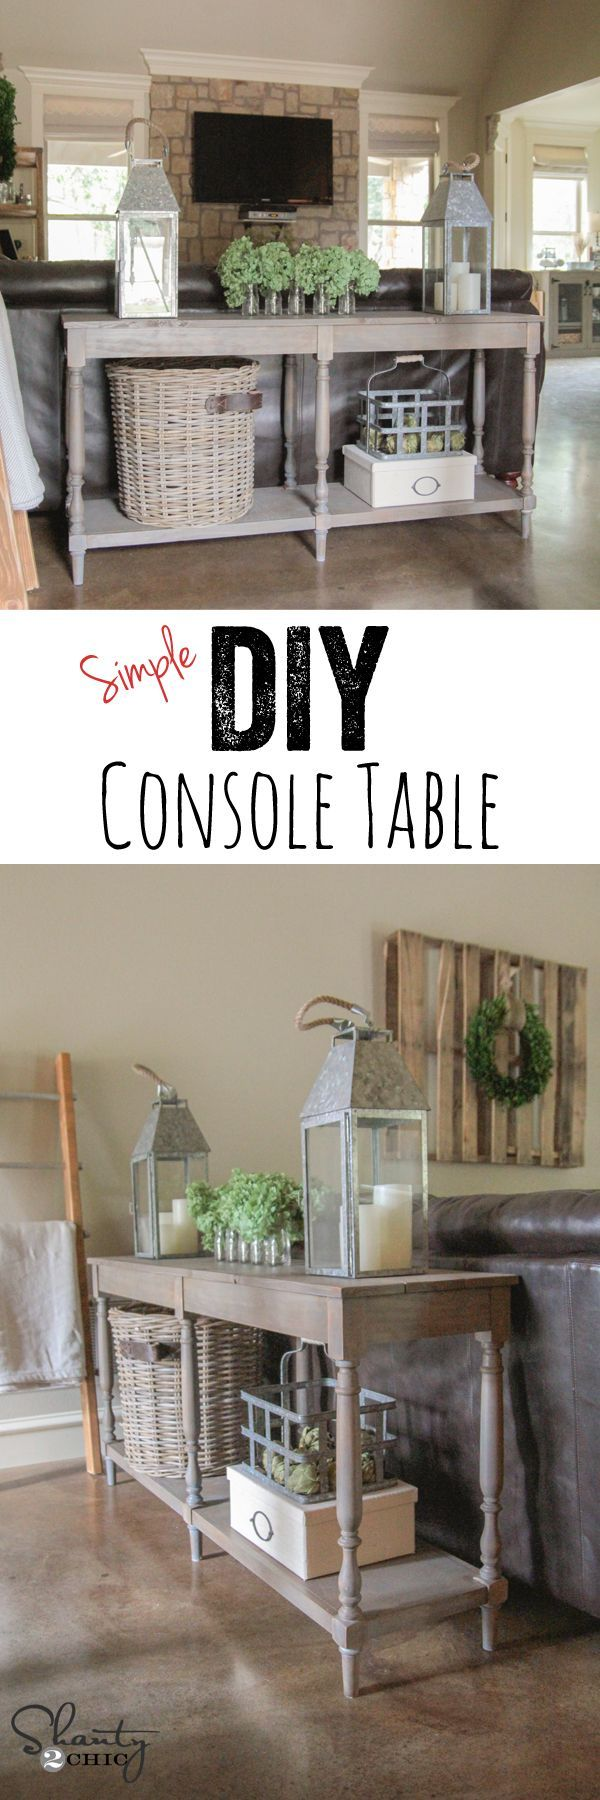 81 Best Tips Tricks Diy Images On Pinterest Decorating Ideas Outlet 4 Prong For Wiring A Stove Http Www Hammerzone Com Free Woodworking Plans Console Table